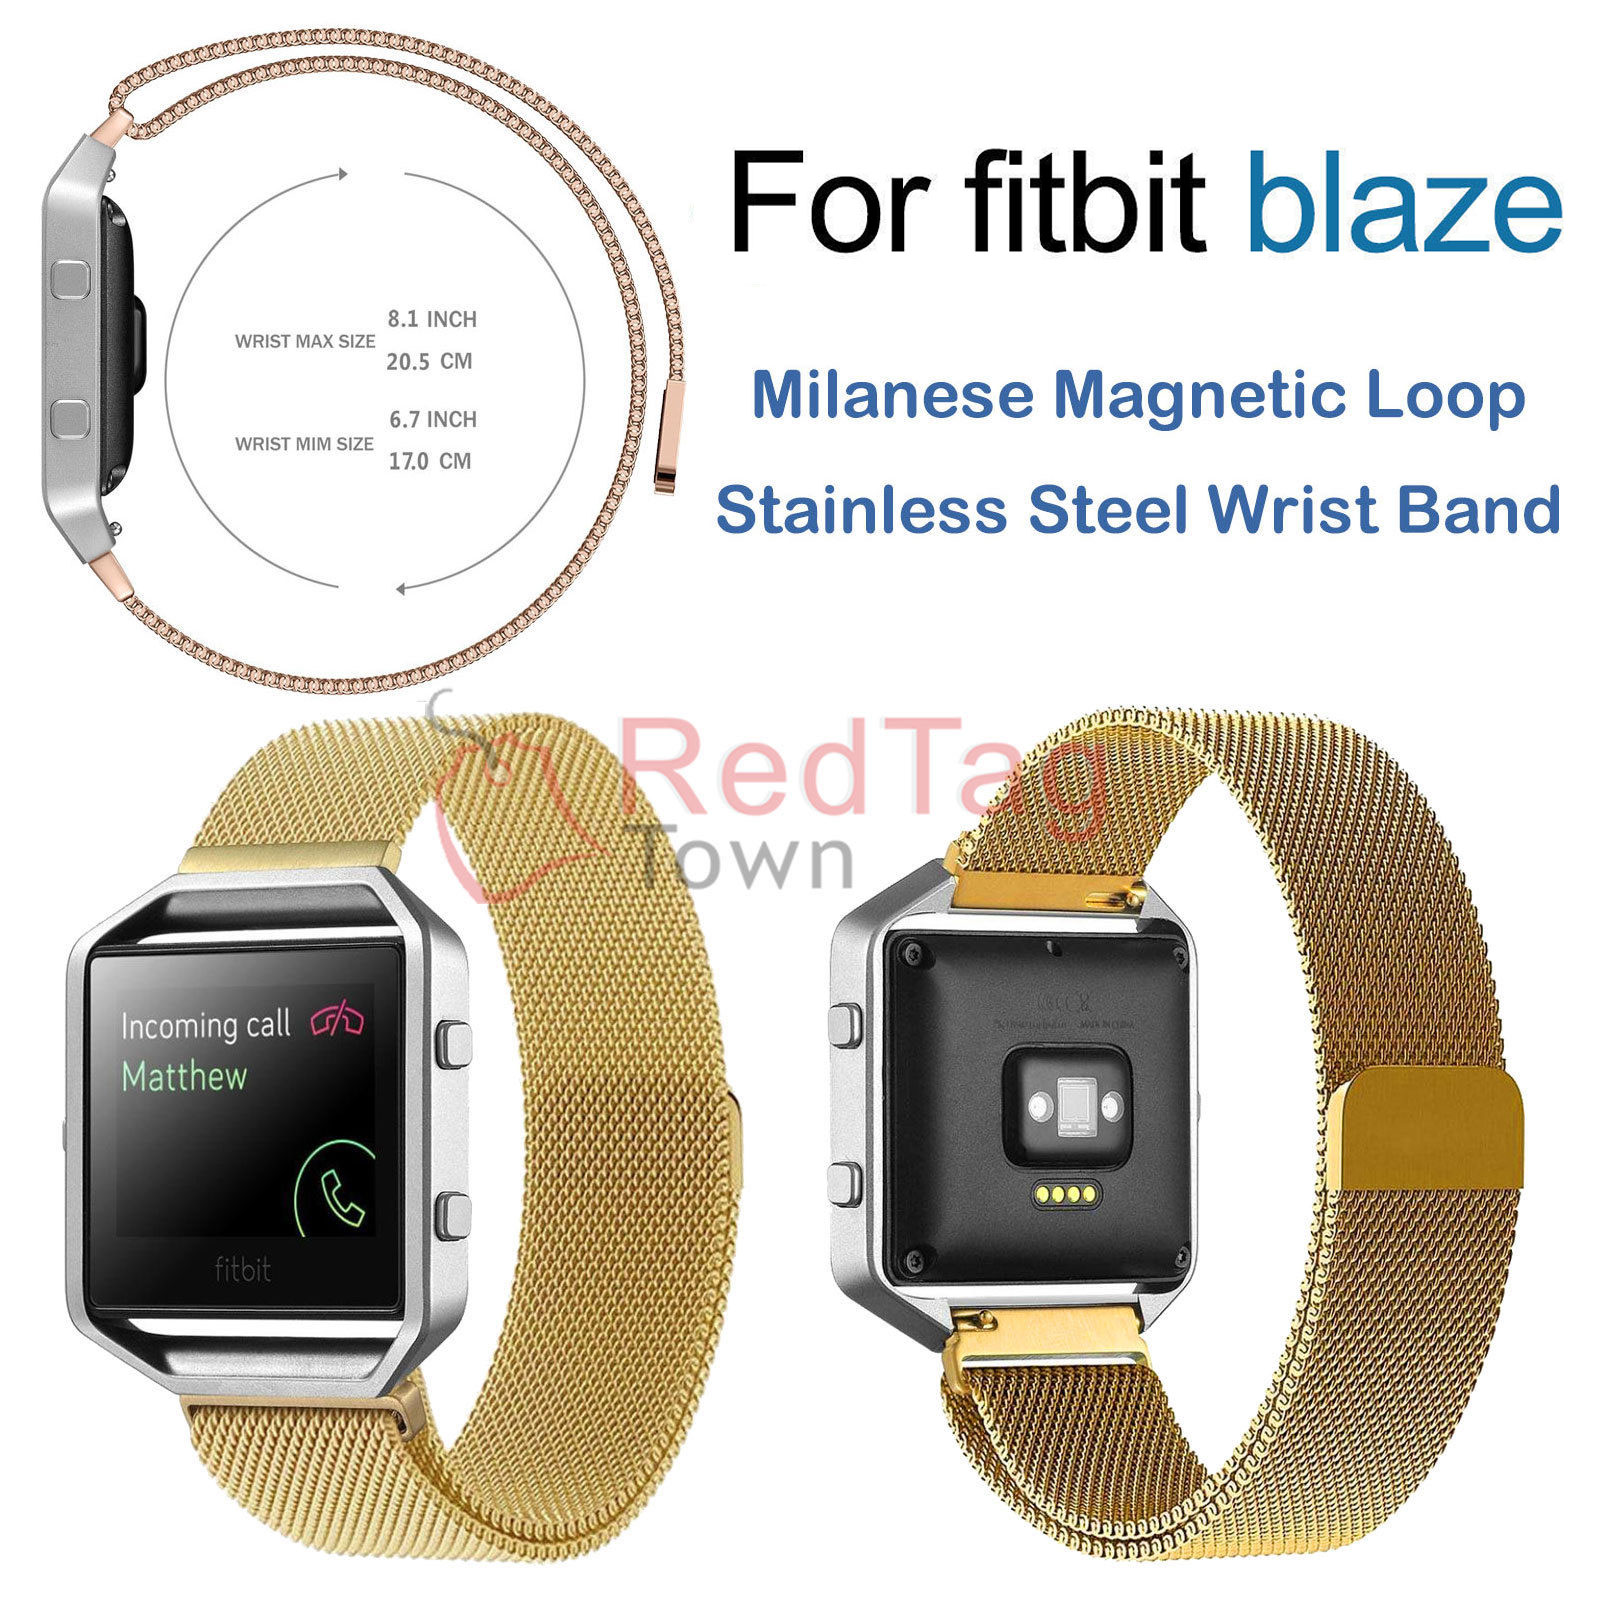 Milanese-Magnetic-Loop-Metal-Wrist-Watch-Band-Strap-Replacement-For-Fitbit-Blaze thumbnail 12